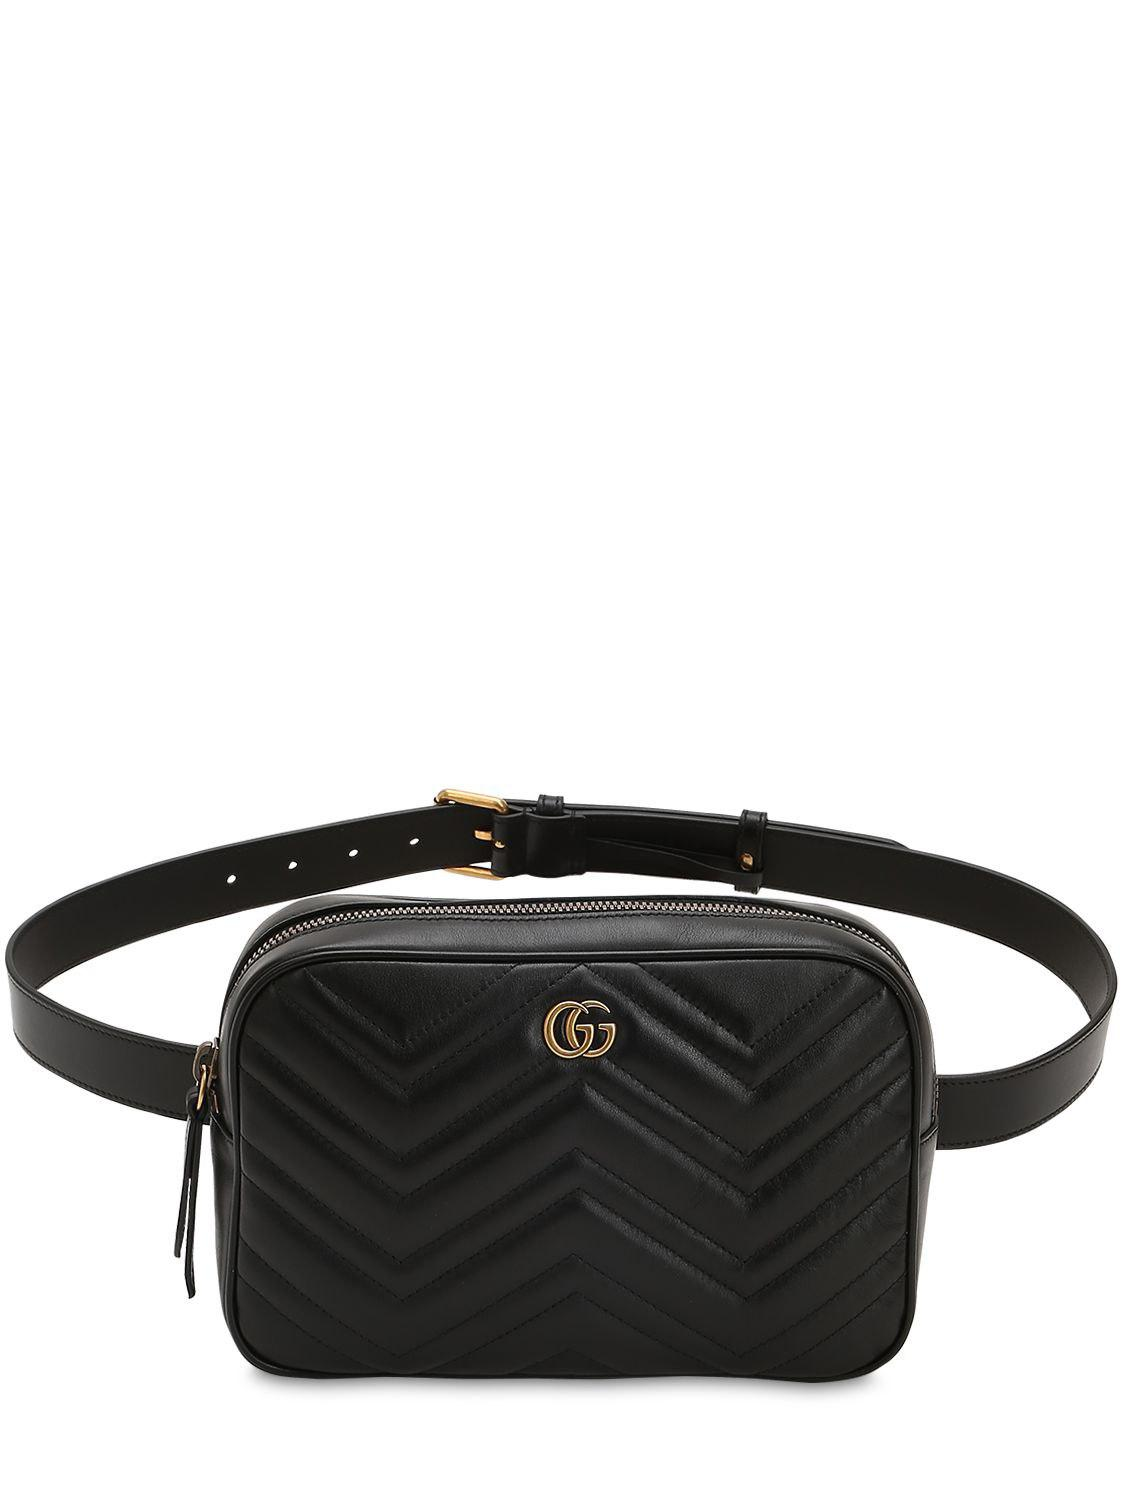 f4cbbc098e4 Gucci Marmont Quilted Leather Belt Bag in Black for Men - Save 7% - Lyst